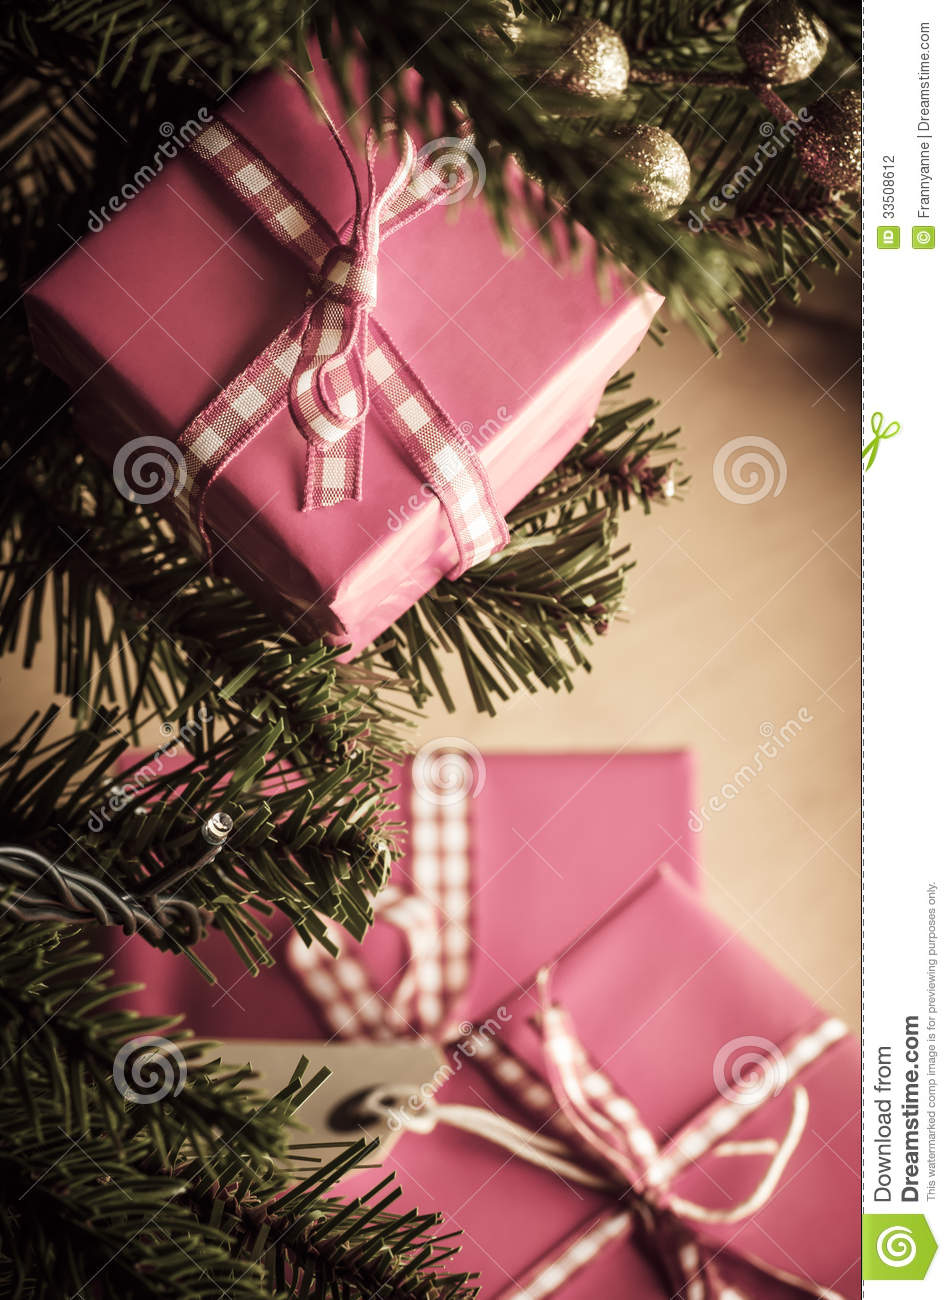 christmas gifts in pink wrapping